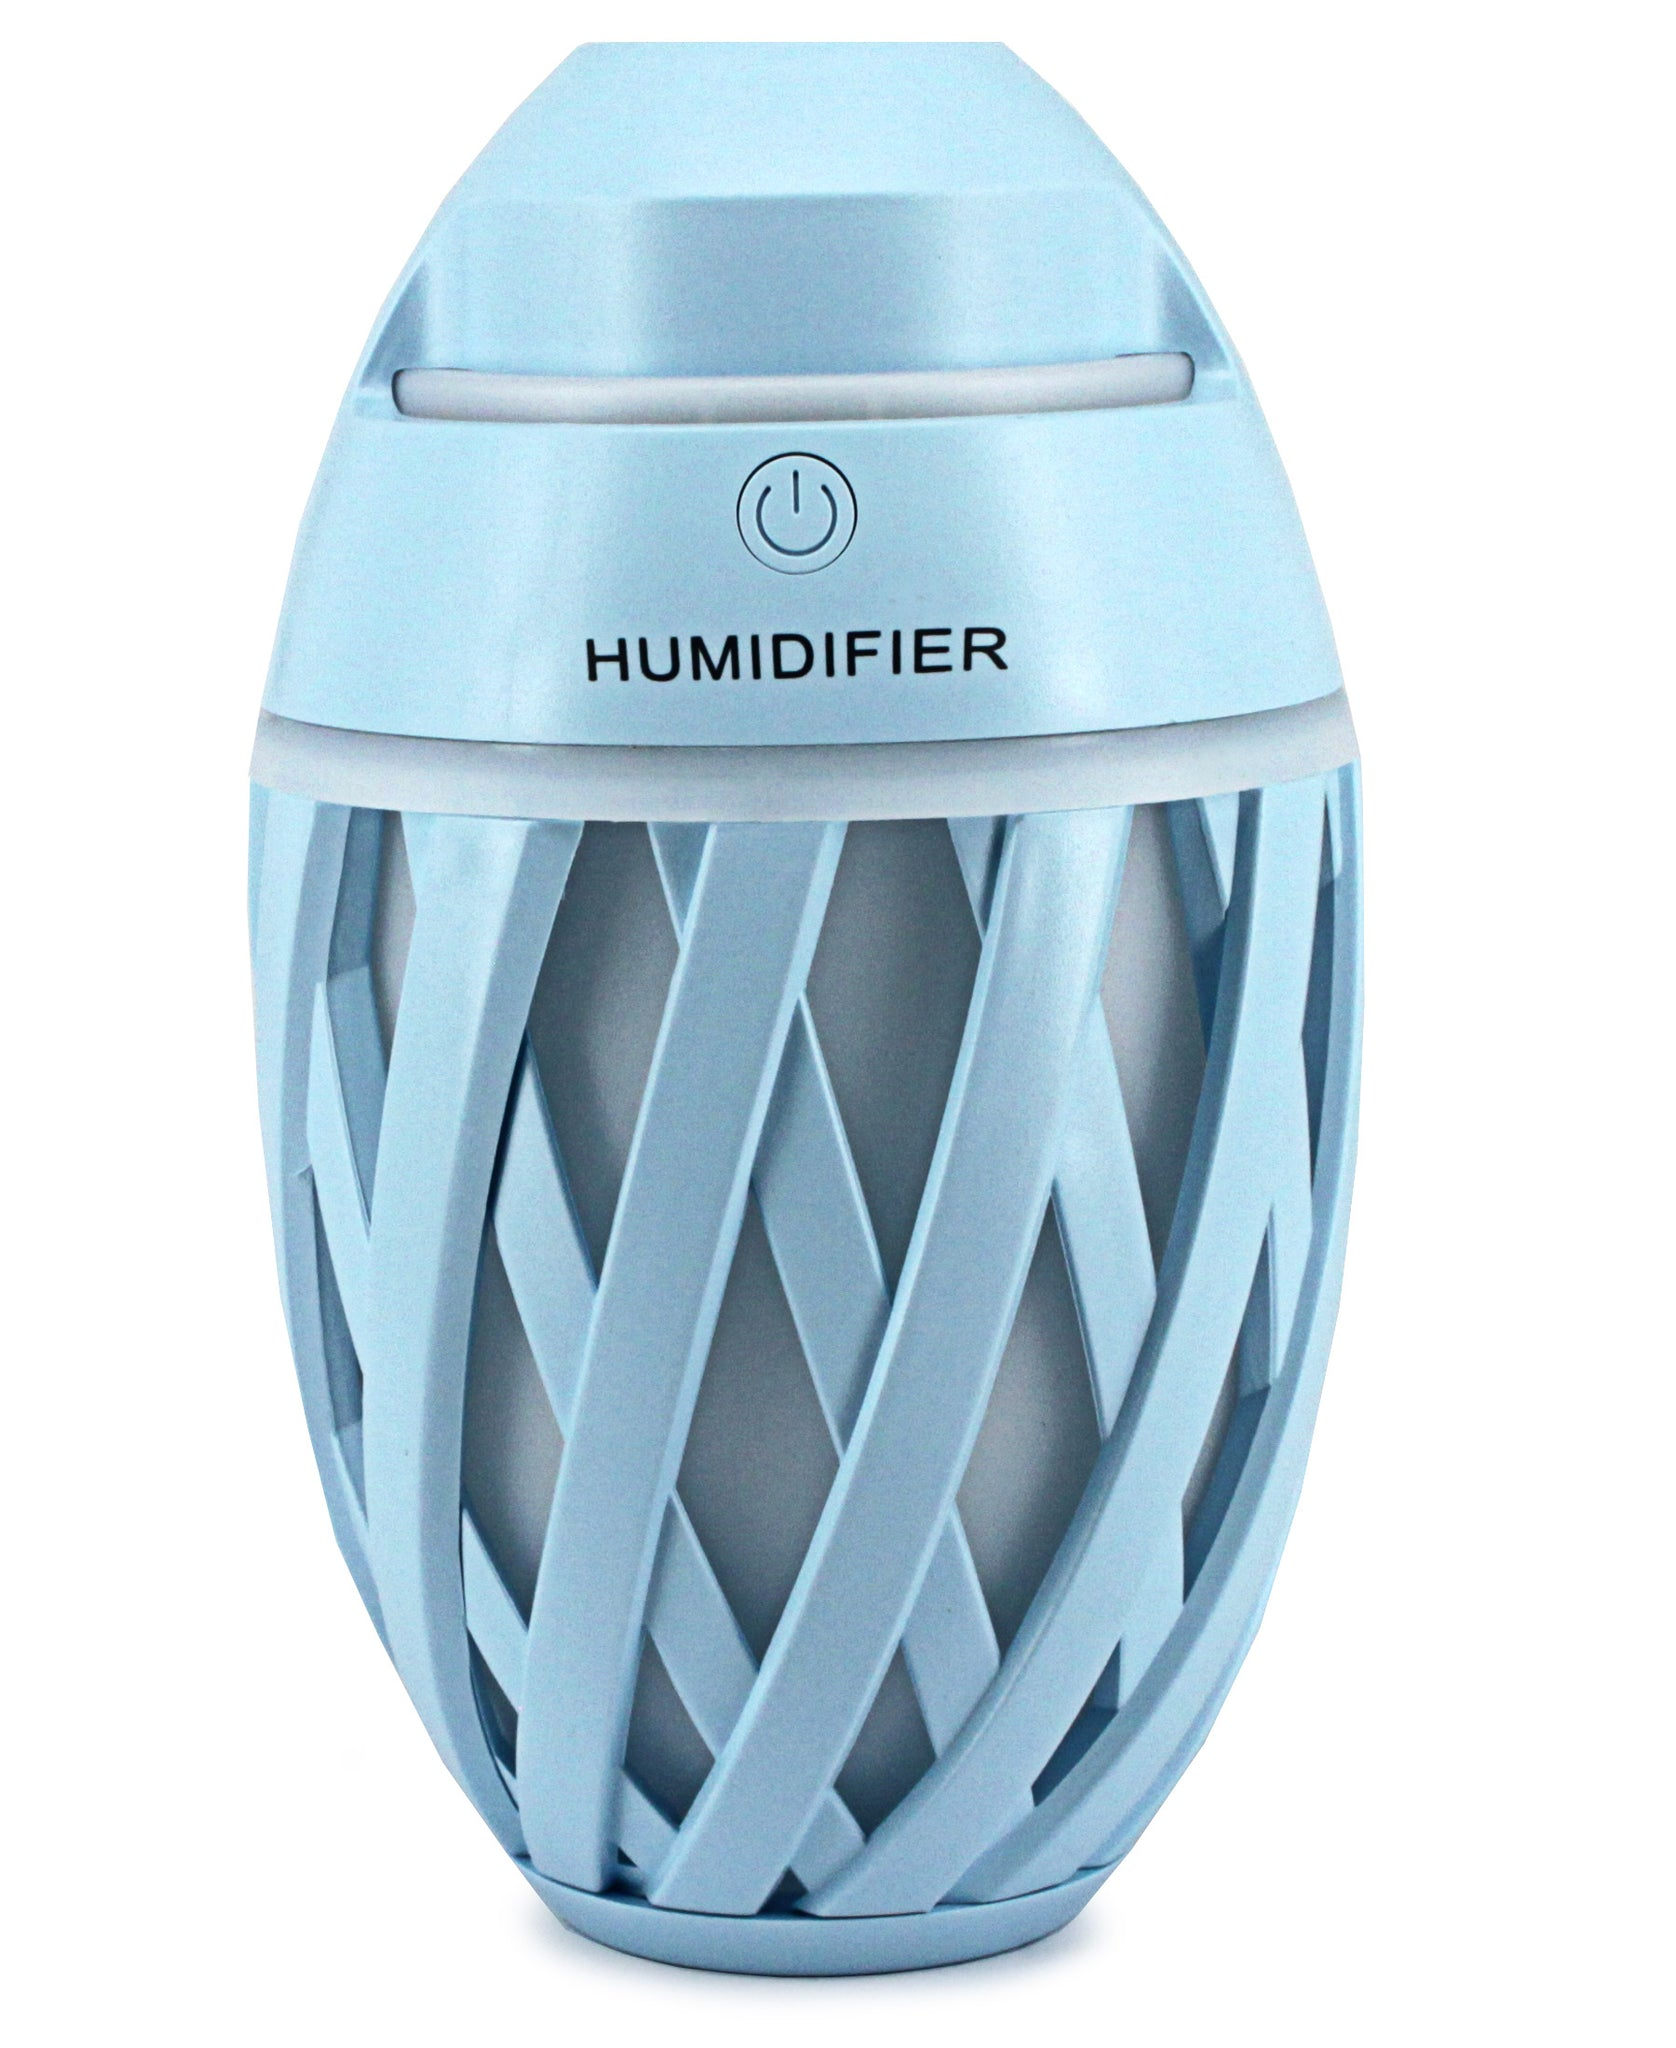 USB Light Up Humidifier - Blue